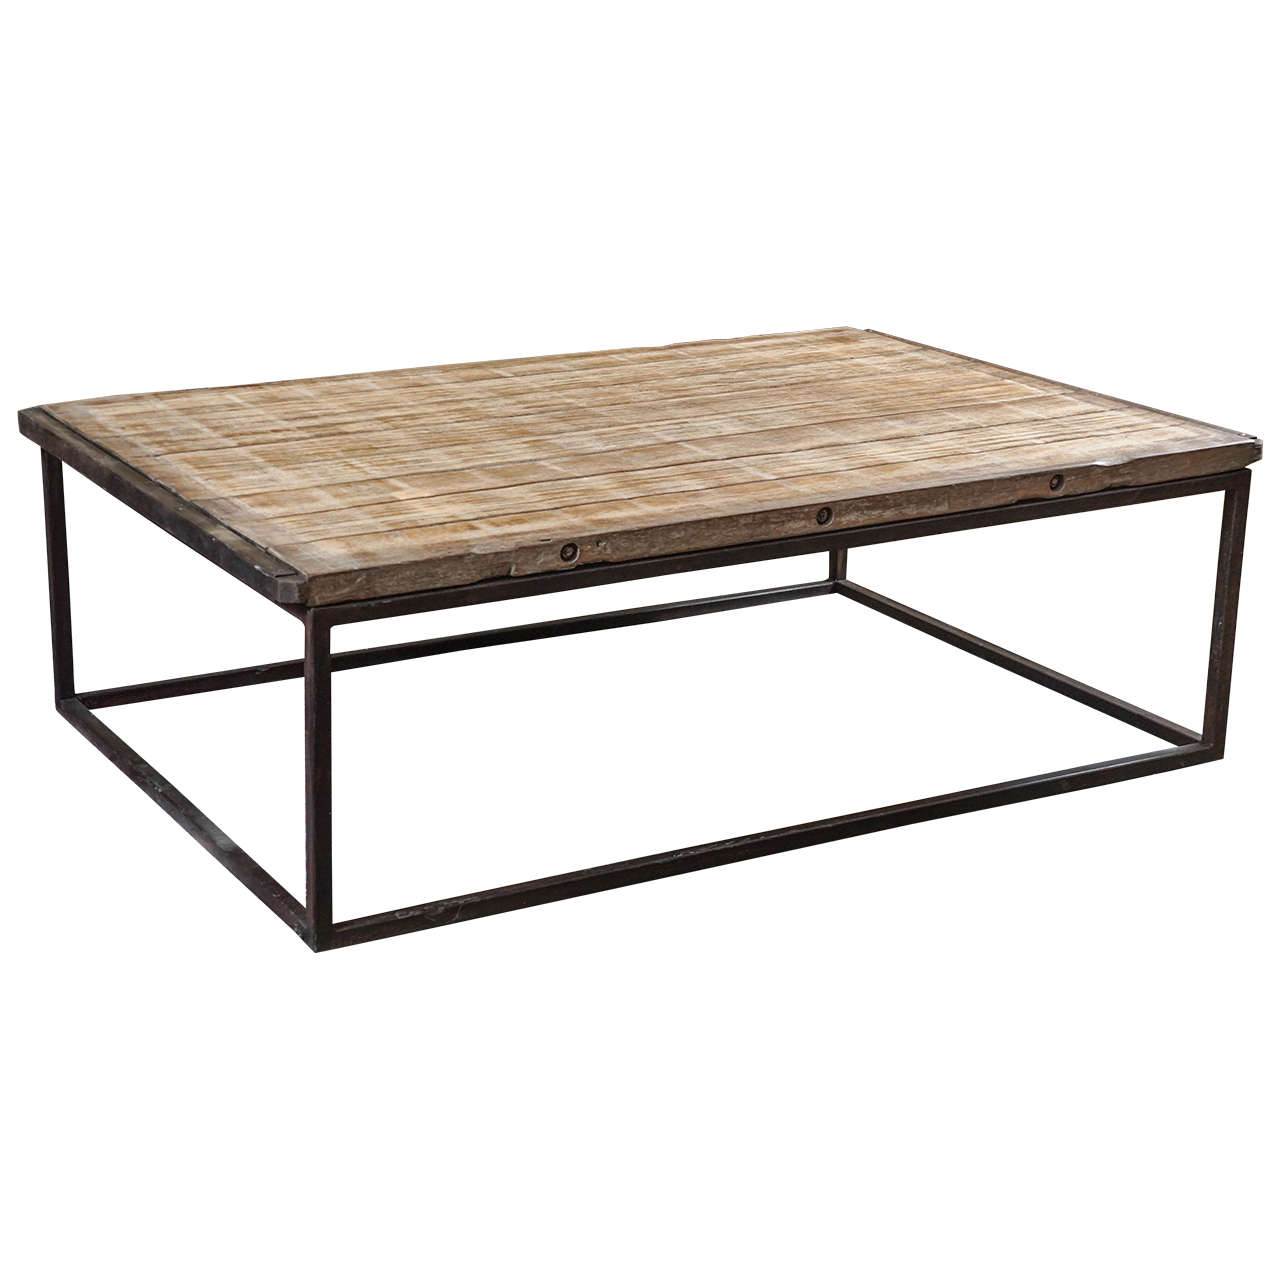 Industrial style coffee table for sale at 1stdibs for Industrial farmhouse coffee table